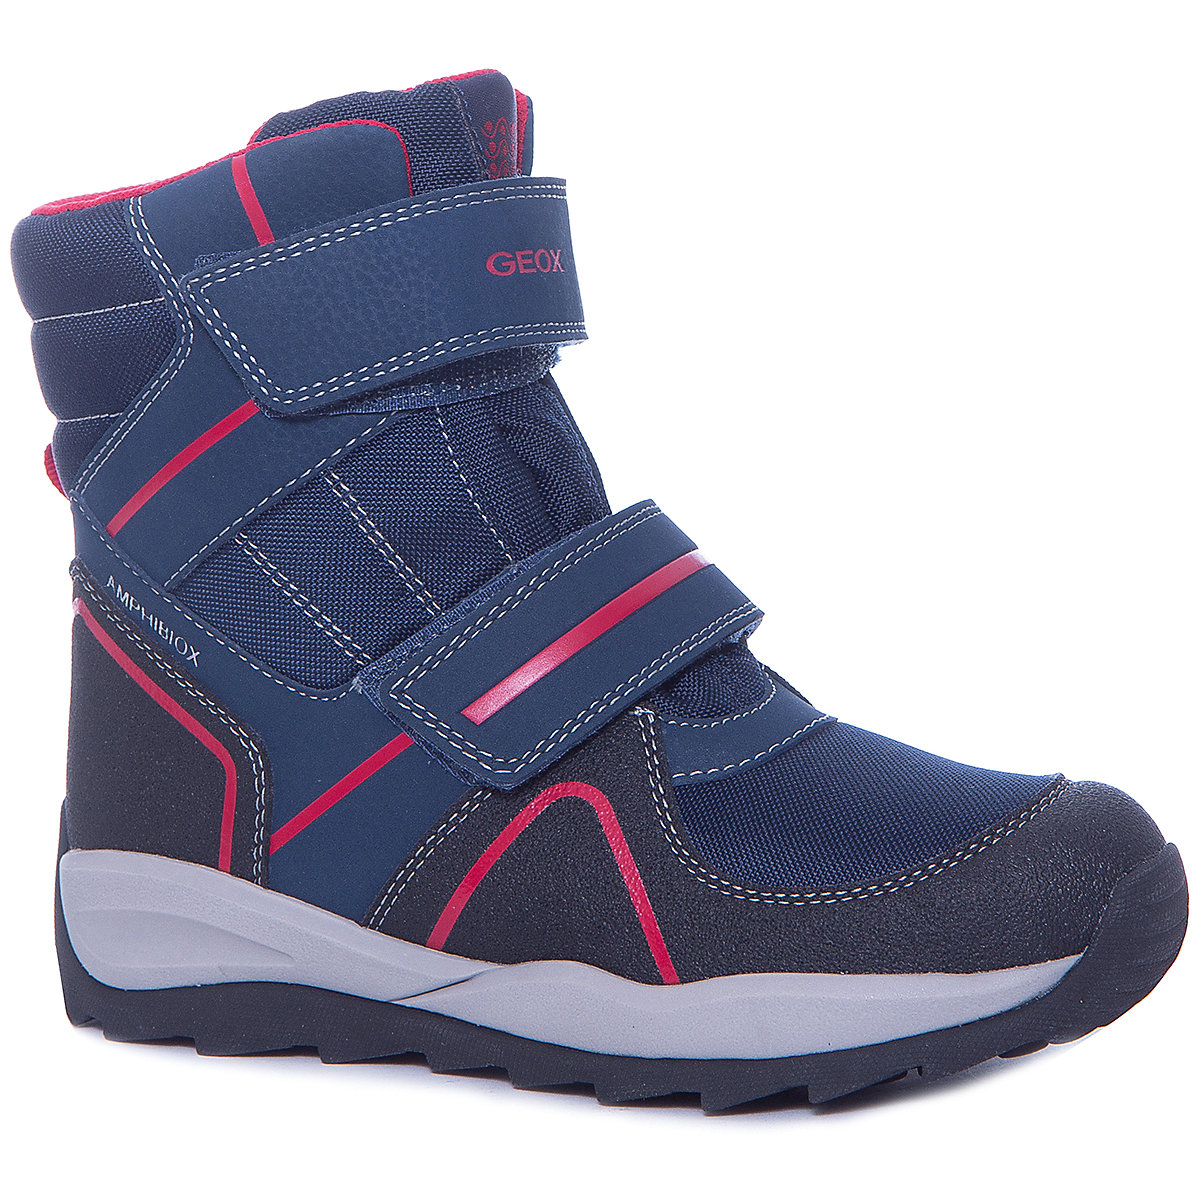 GEOX Boots 8786596 children shoes For boy Winter Boys faux fur MTpromo geox boots 8786502 baby shoes for boy faux fur winter